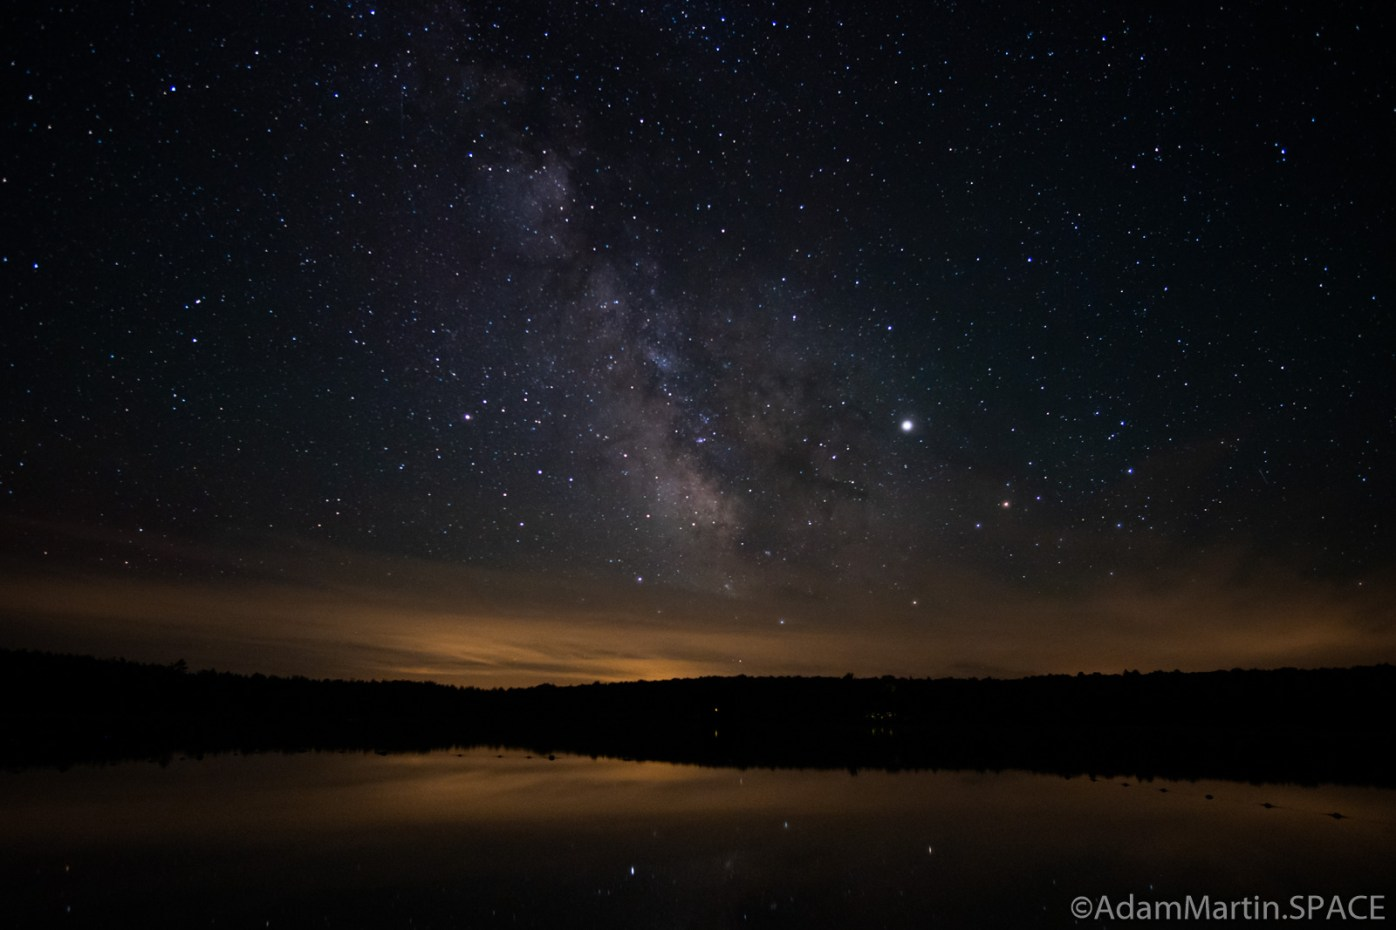 Lost Lake – Astrophotography in Tipler, Wisconsin